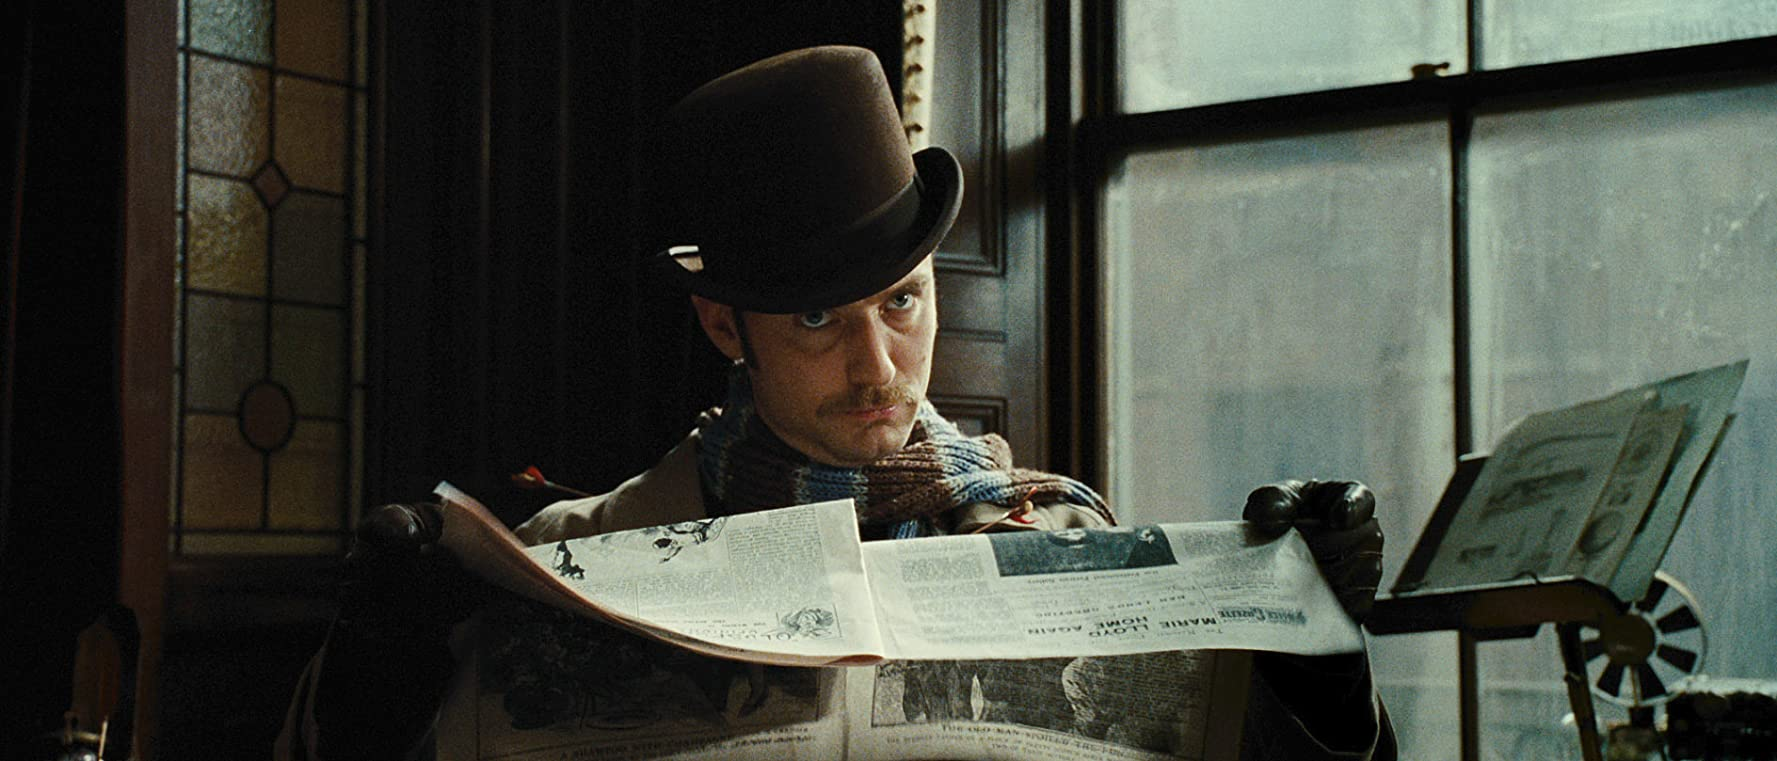 Jude Law in Sherlock Holmes: A Game of Shadows (2011)